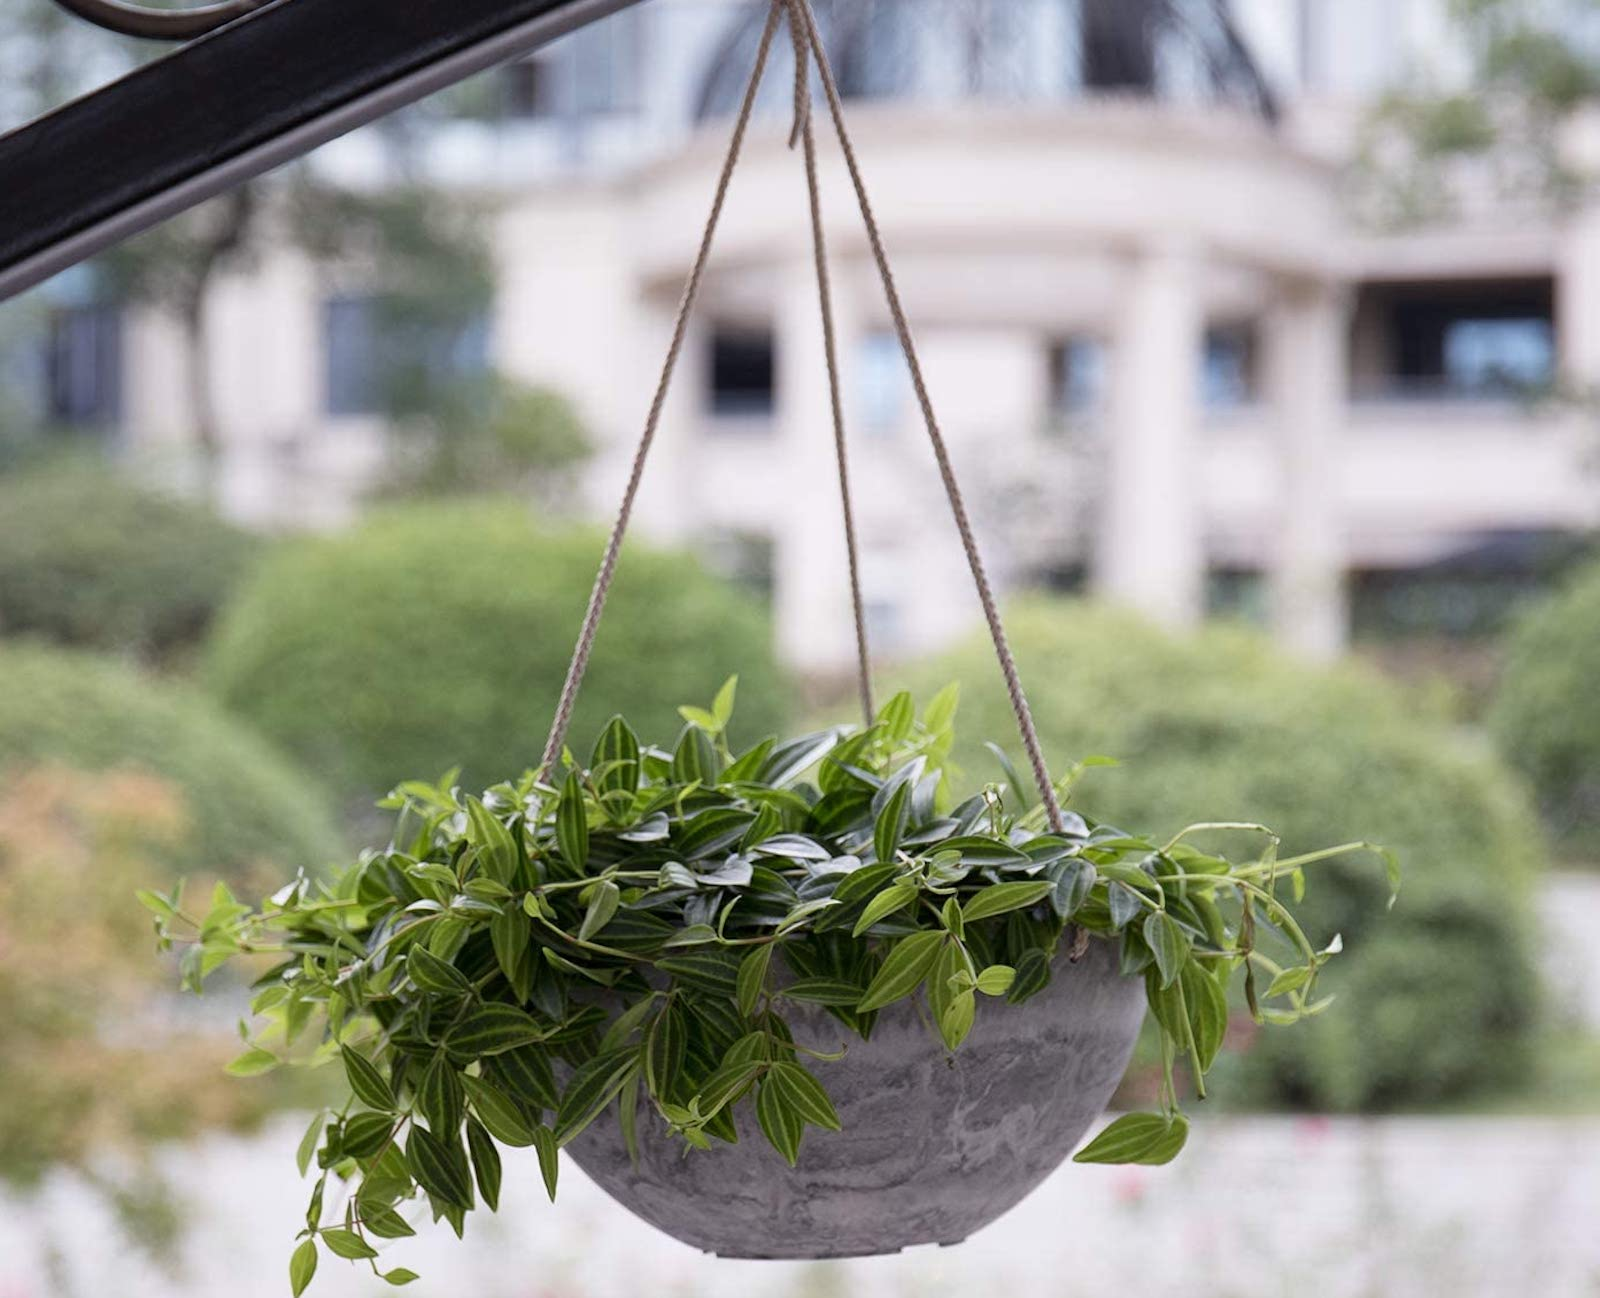 The gray marble La Jolie Muse planter with a leafy green plant hanging on a balcony.